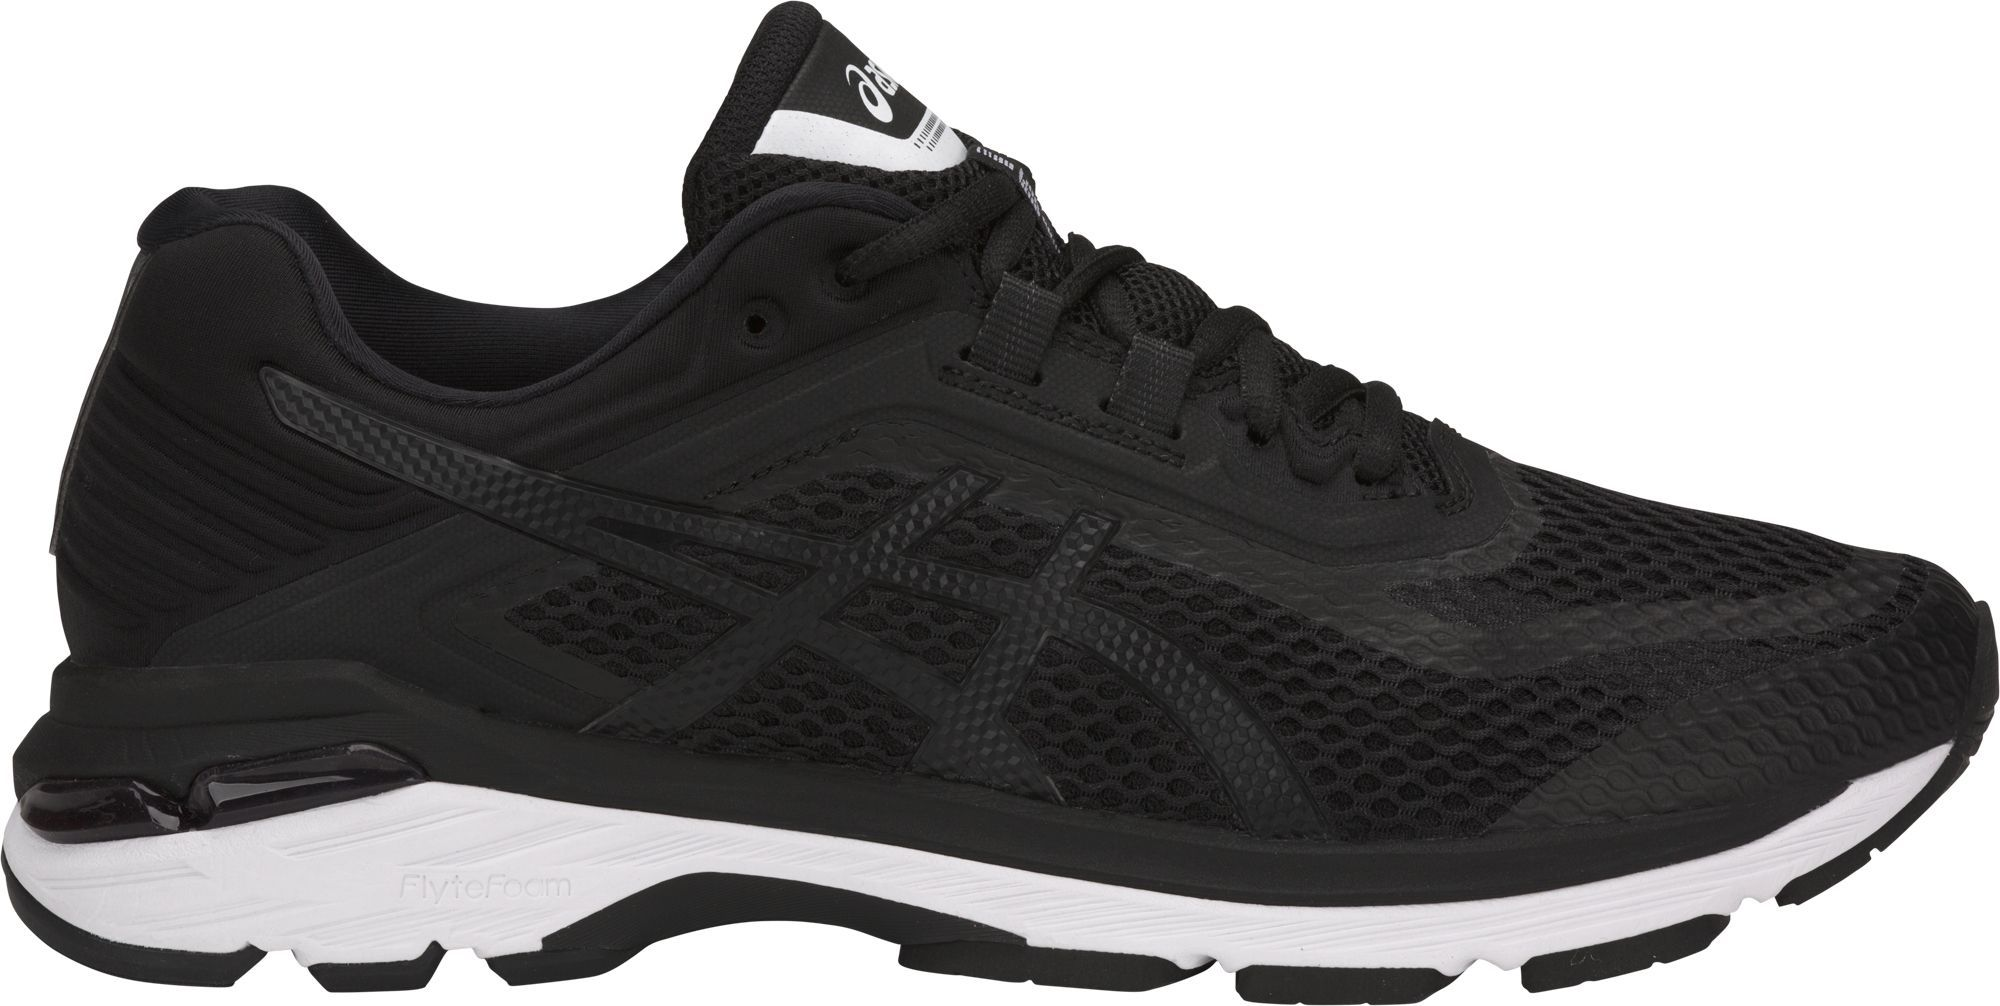 ASICS Men's GT-2000 6 Running Shoes | Running shoes, Running ...